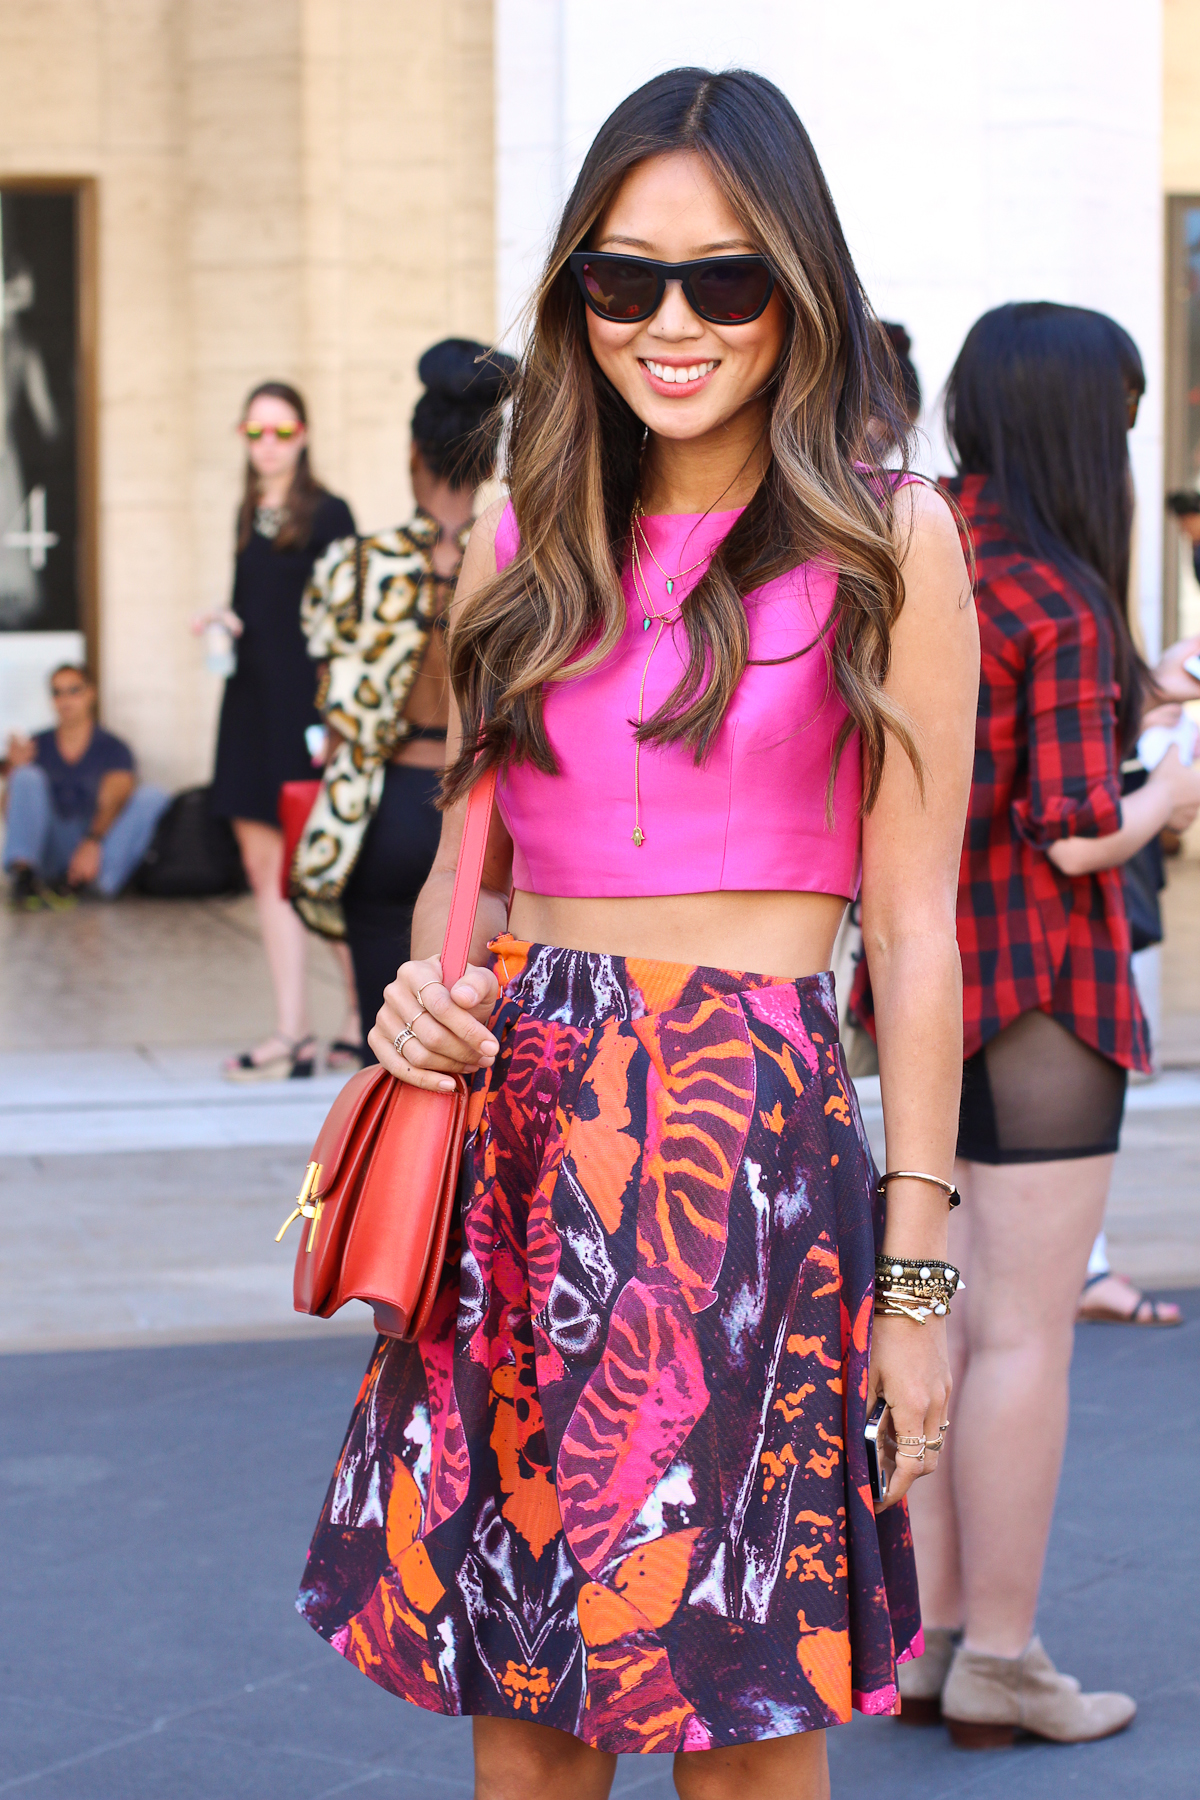 Mercedes Benz Fashion Week Streetstyle Day Two Ryanbyryanchua